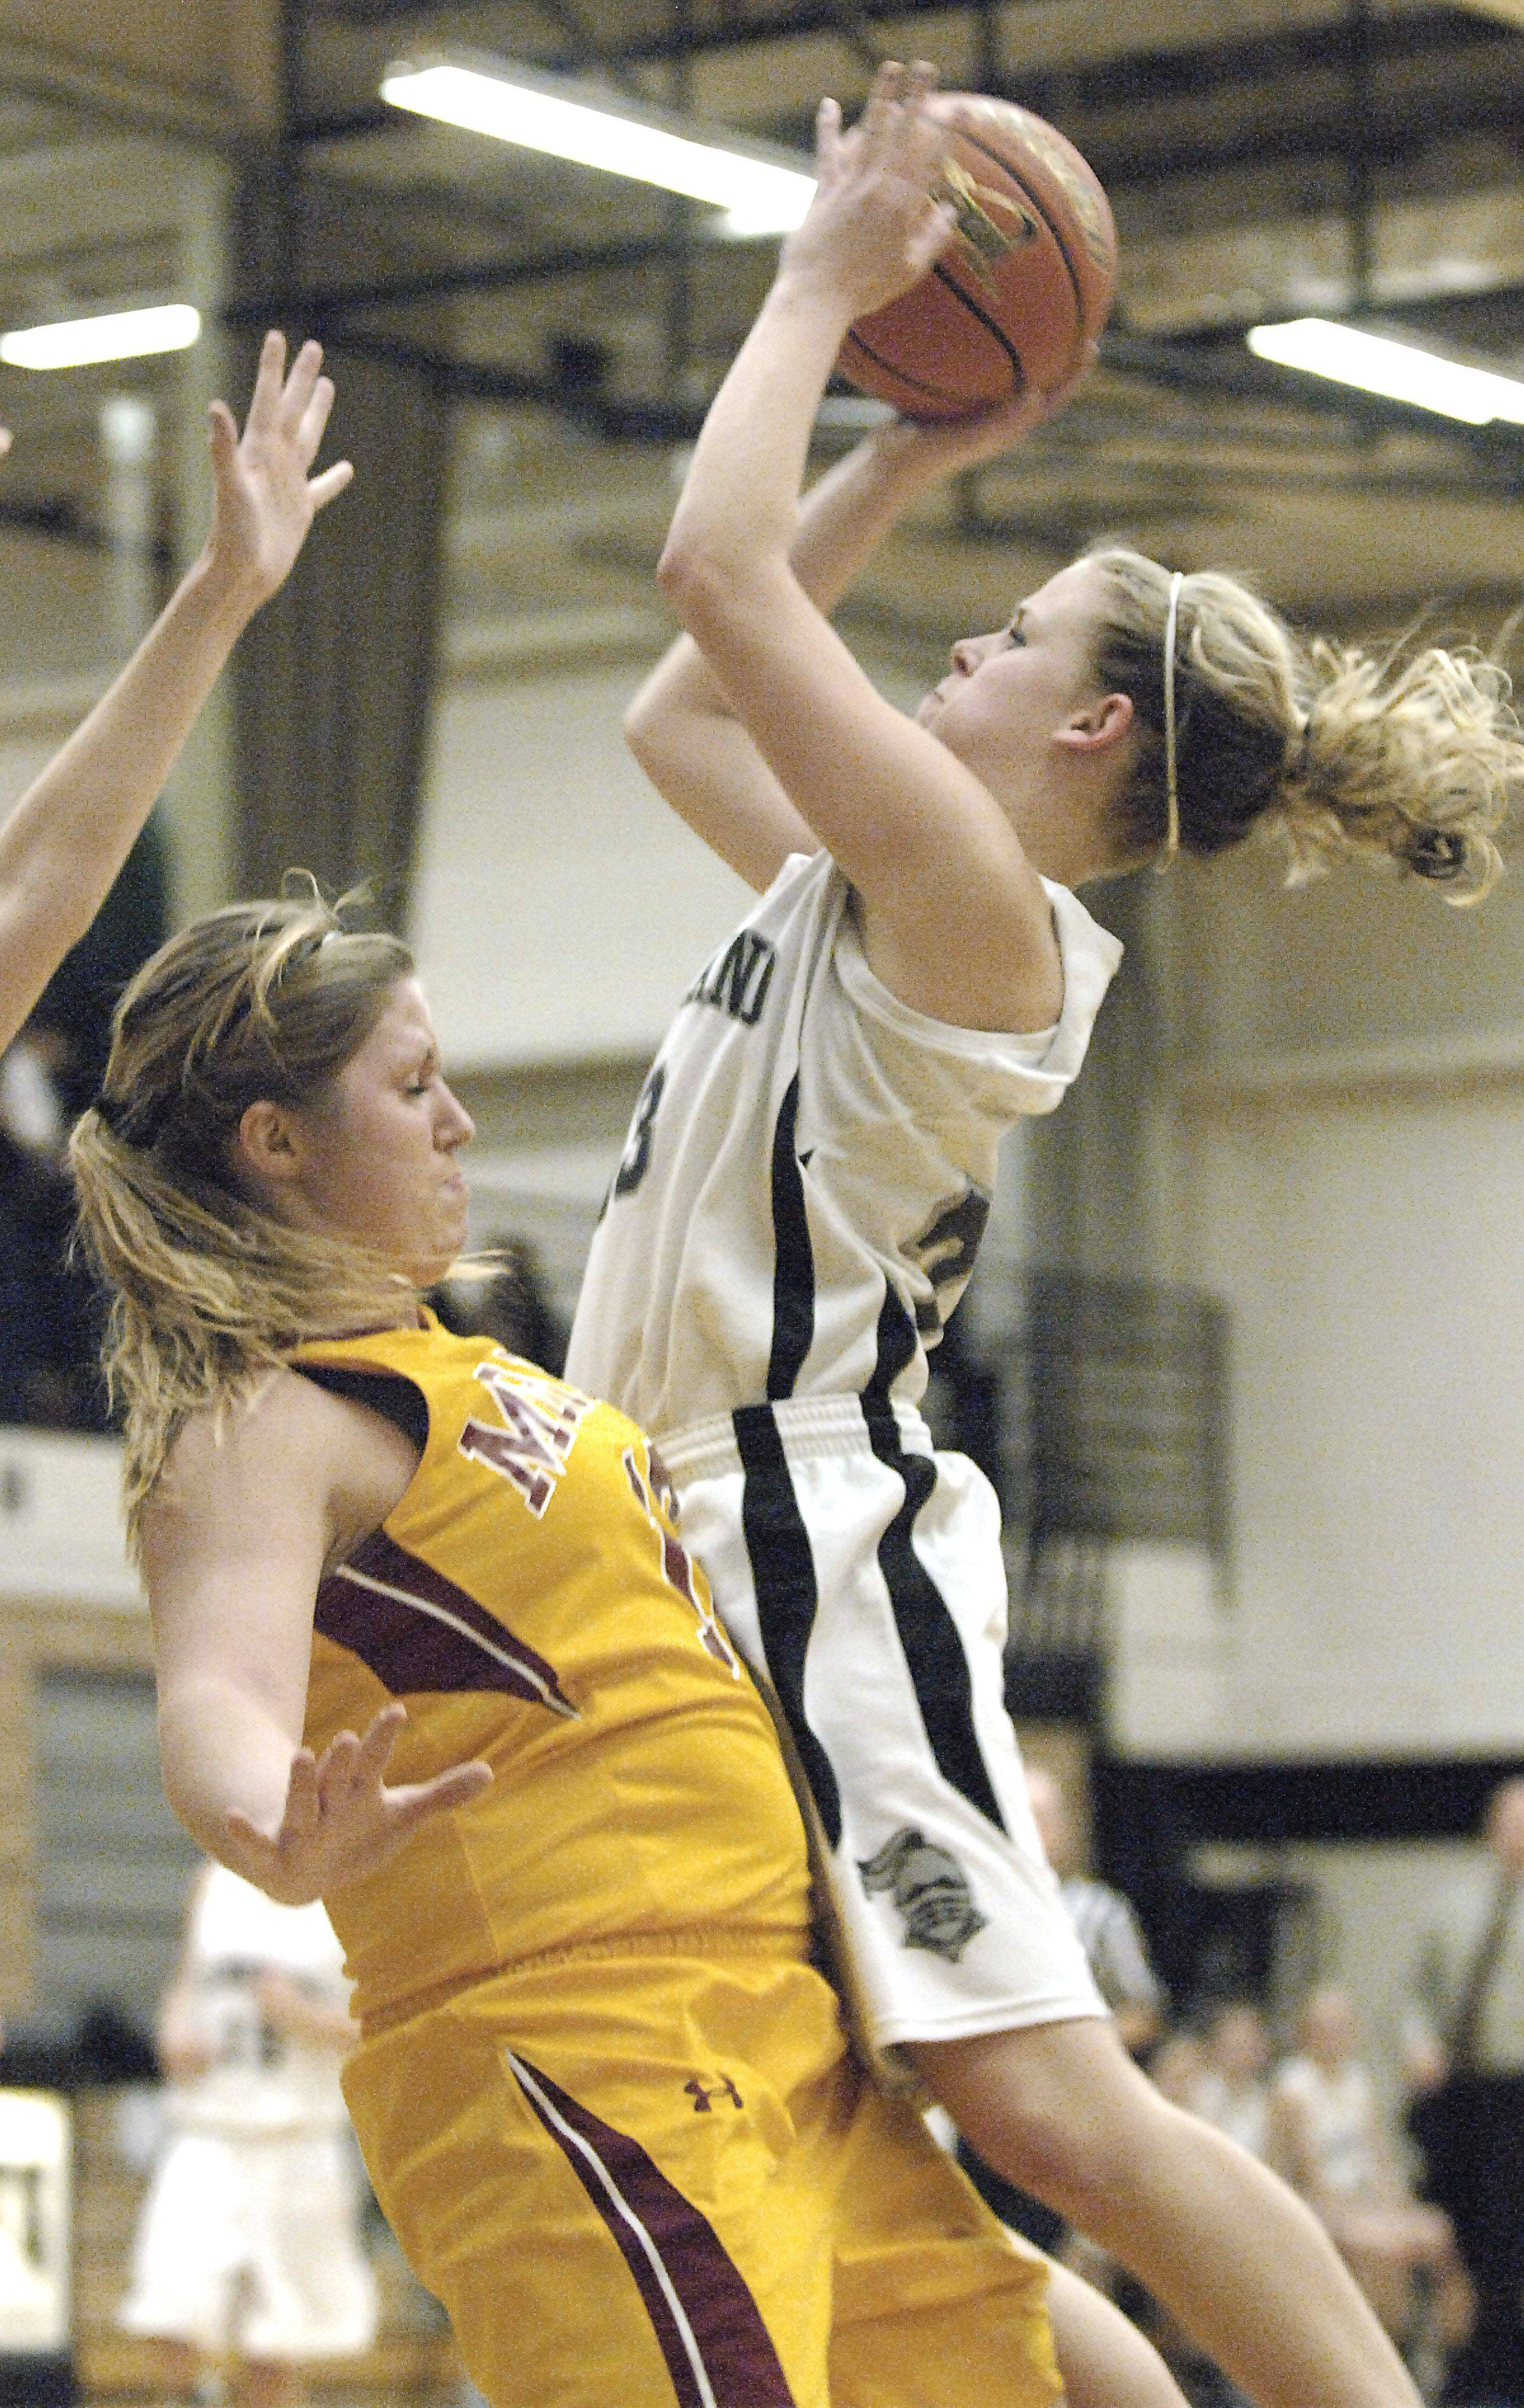 Kaneland's Tesa Alderman sinks a shot while colliding with Morris' Layney Miller in the first half.